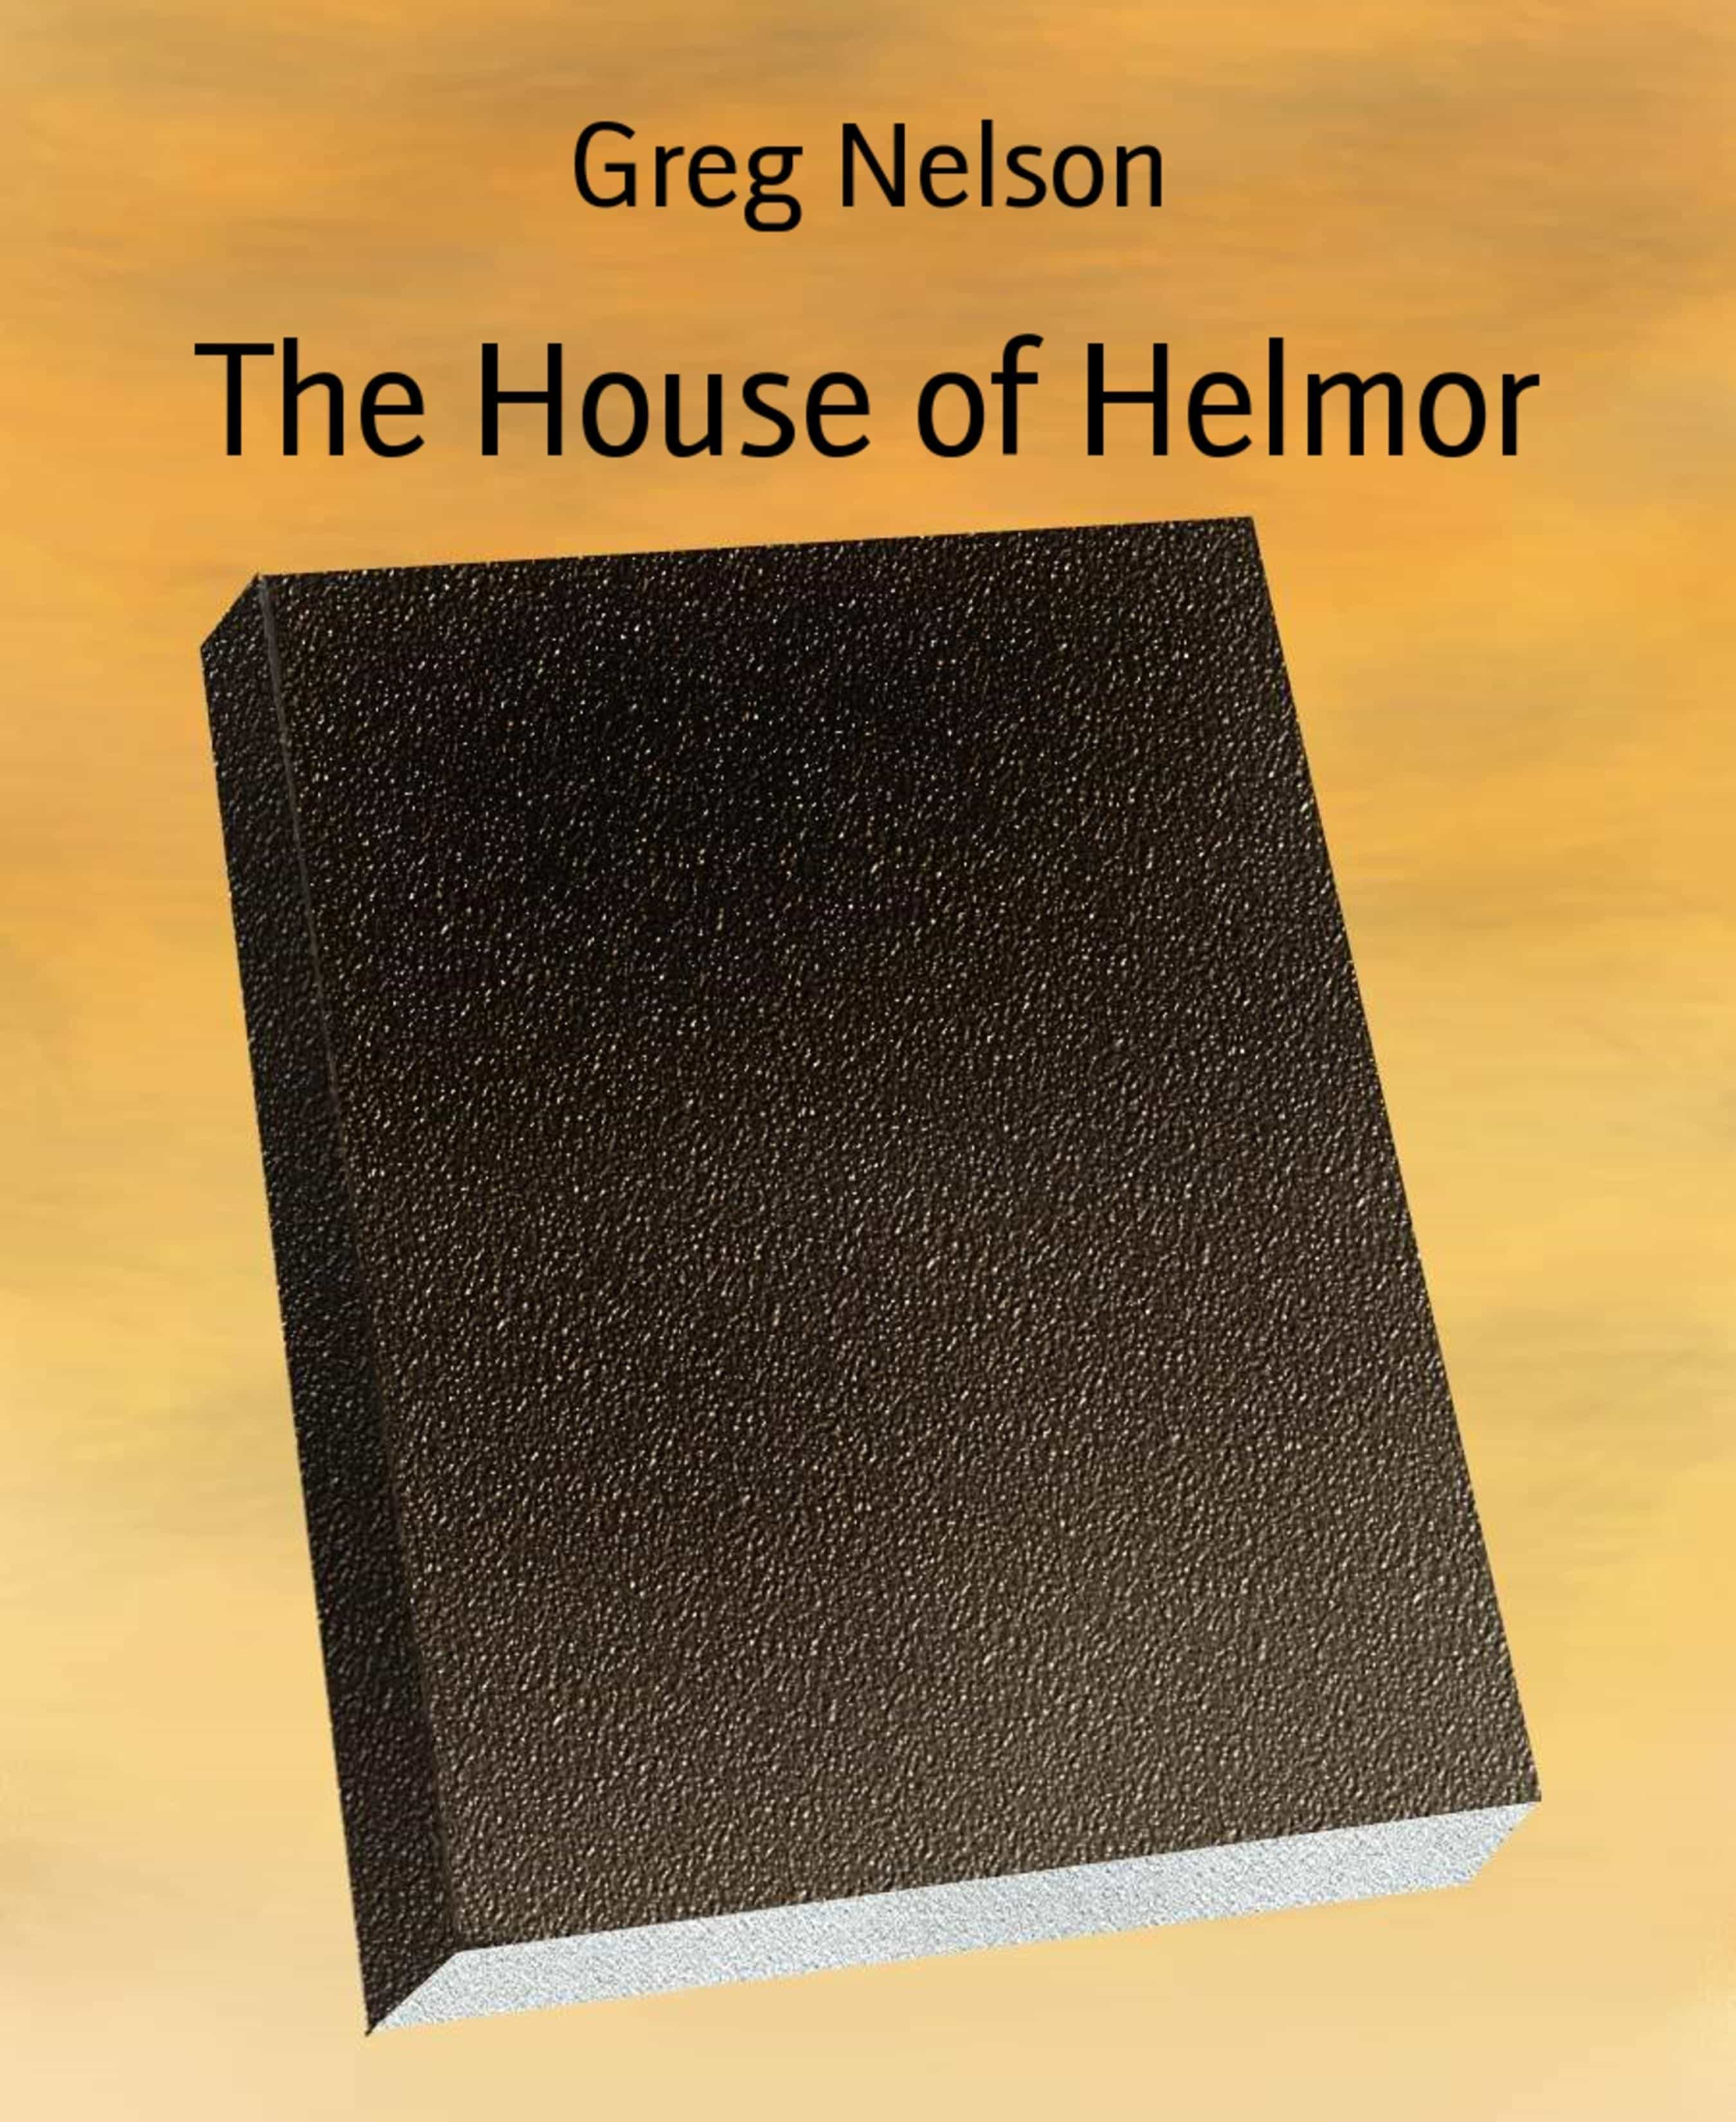 THE HOUSE OF HELMOR